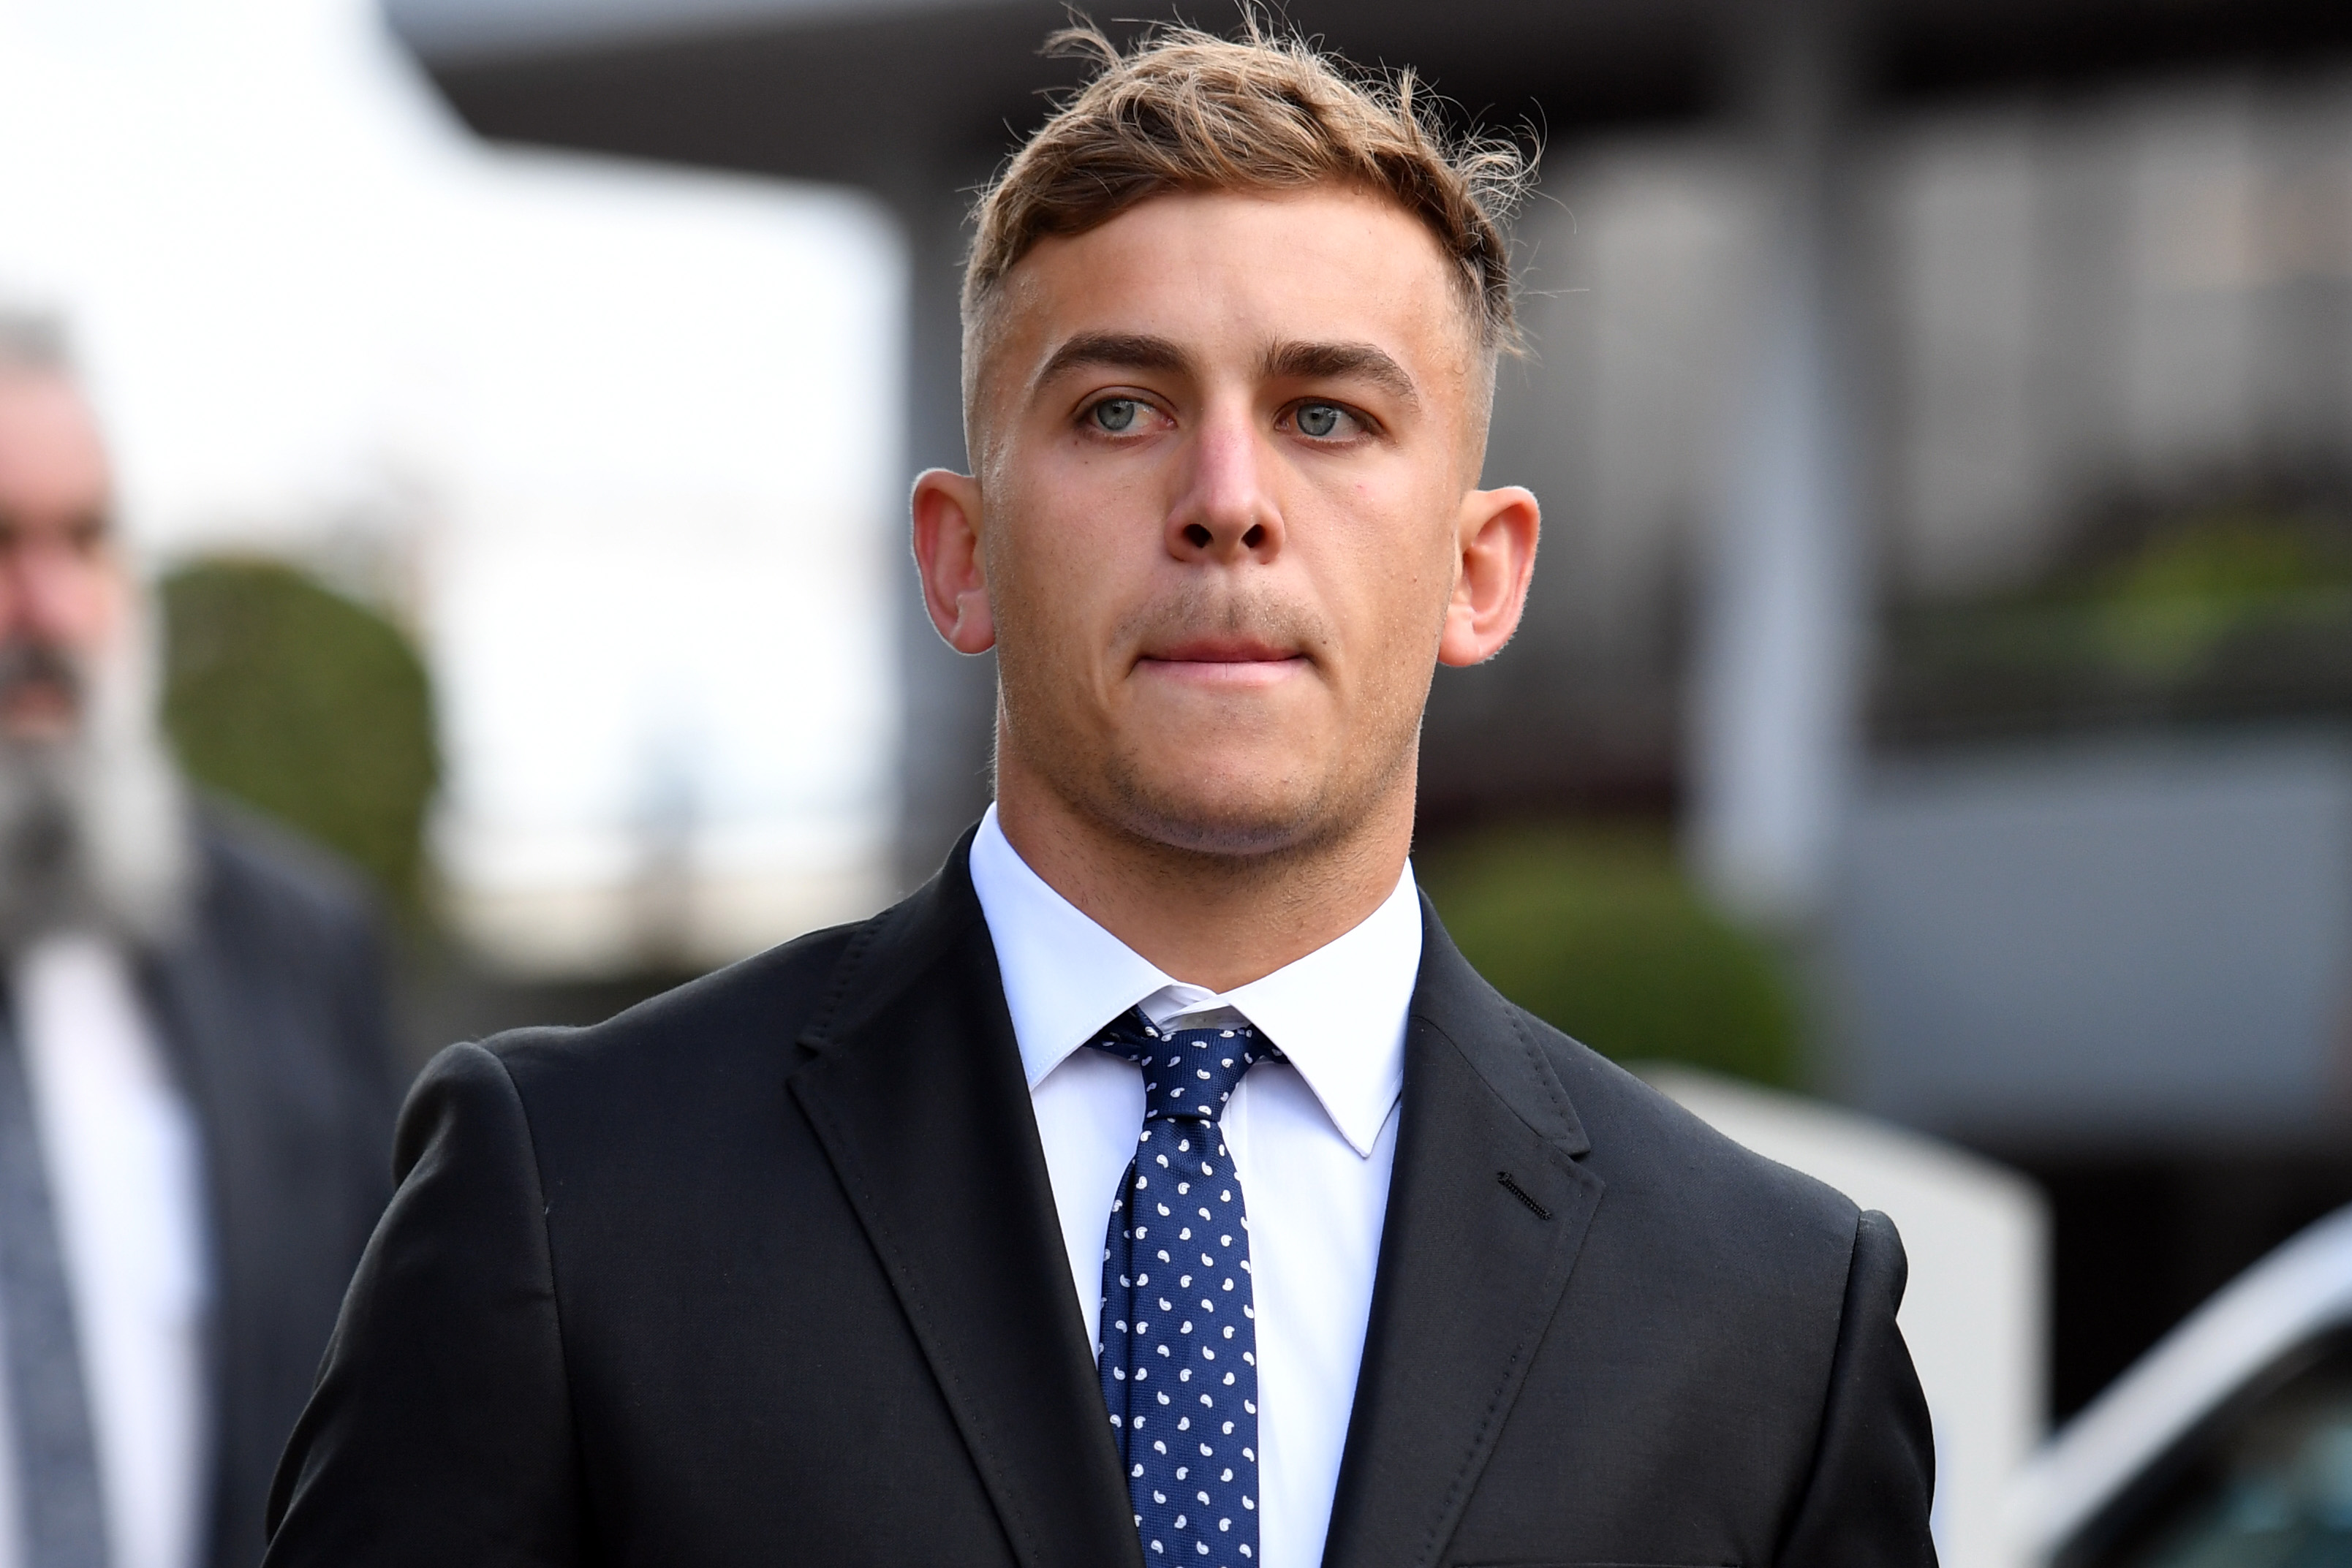 Shellharbour player Callan Sinclair arrives at Wollongong Local Court, Monday, 2 November 2020. Sinclair and St George Dragons player Jack De Belin are due to begin a two-week trial on February 3 over allegations the pair sexually assaulted a 19-year-old woman in a Wollongong apartment in December 2018. Photo: Sam Mooy/The Sydney Morning Herald